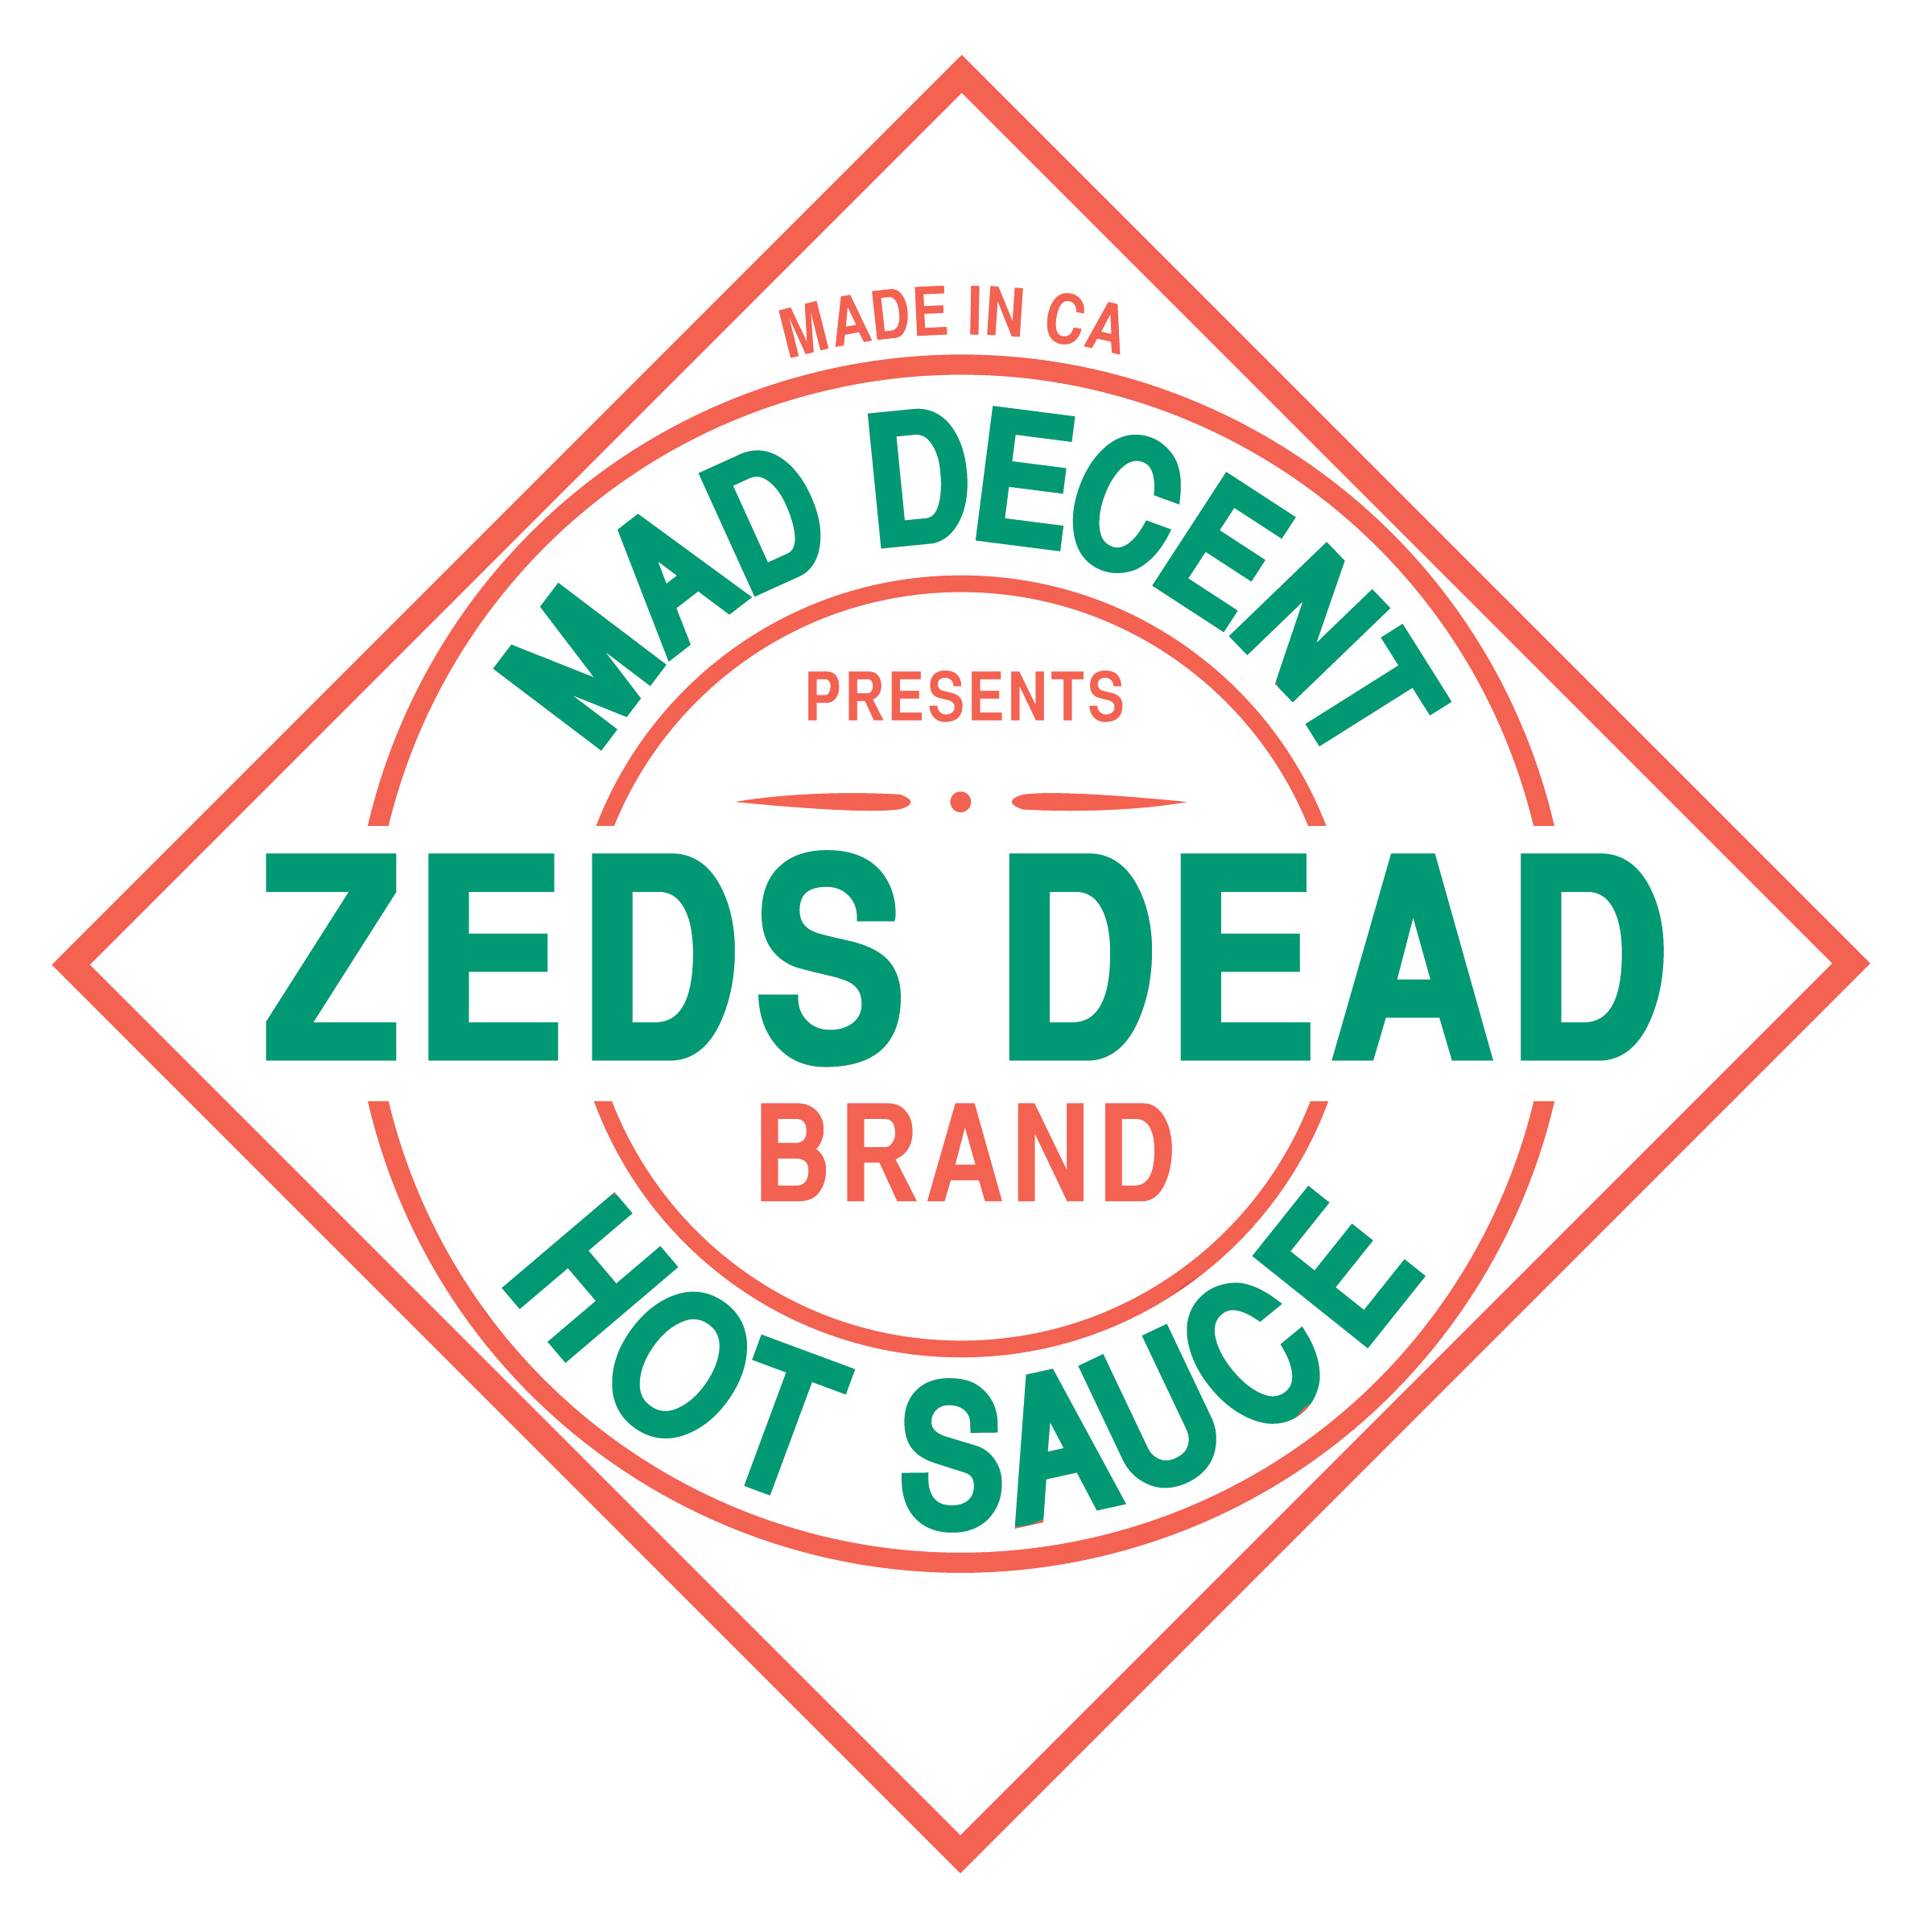 Marina and the Diamonds - Lies (Zeds Dead Remix) [Free